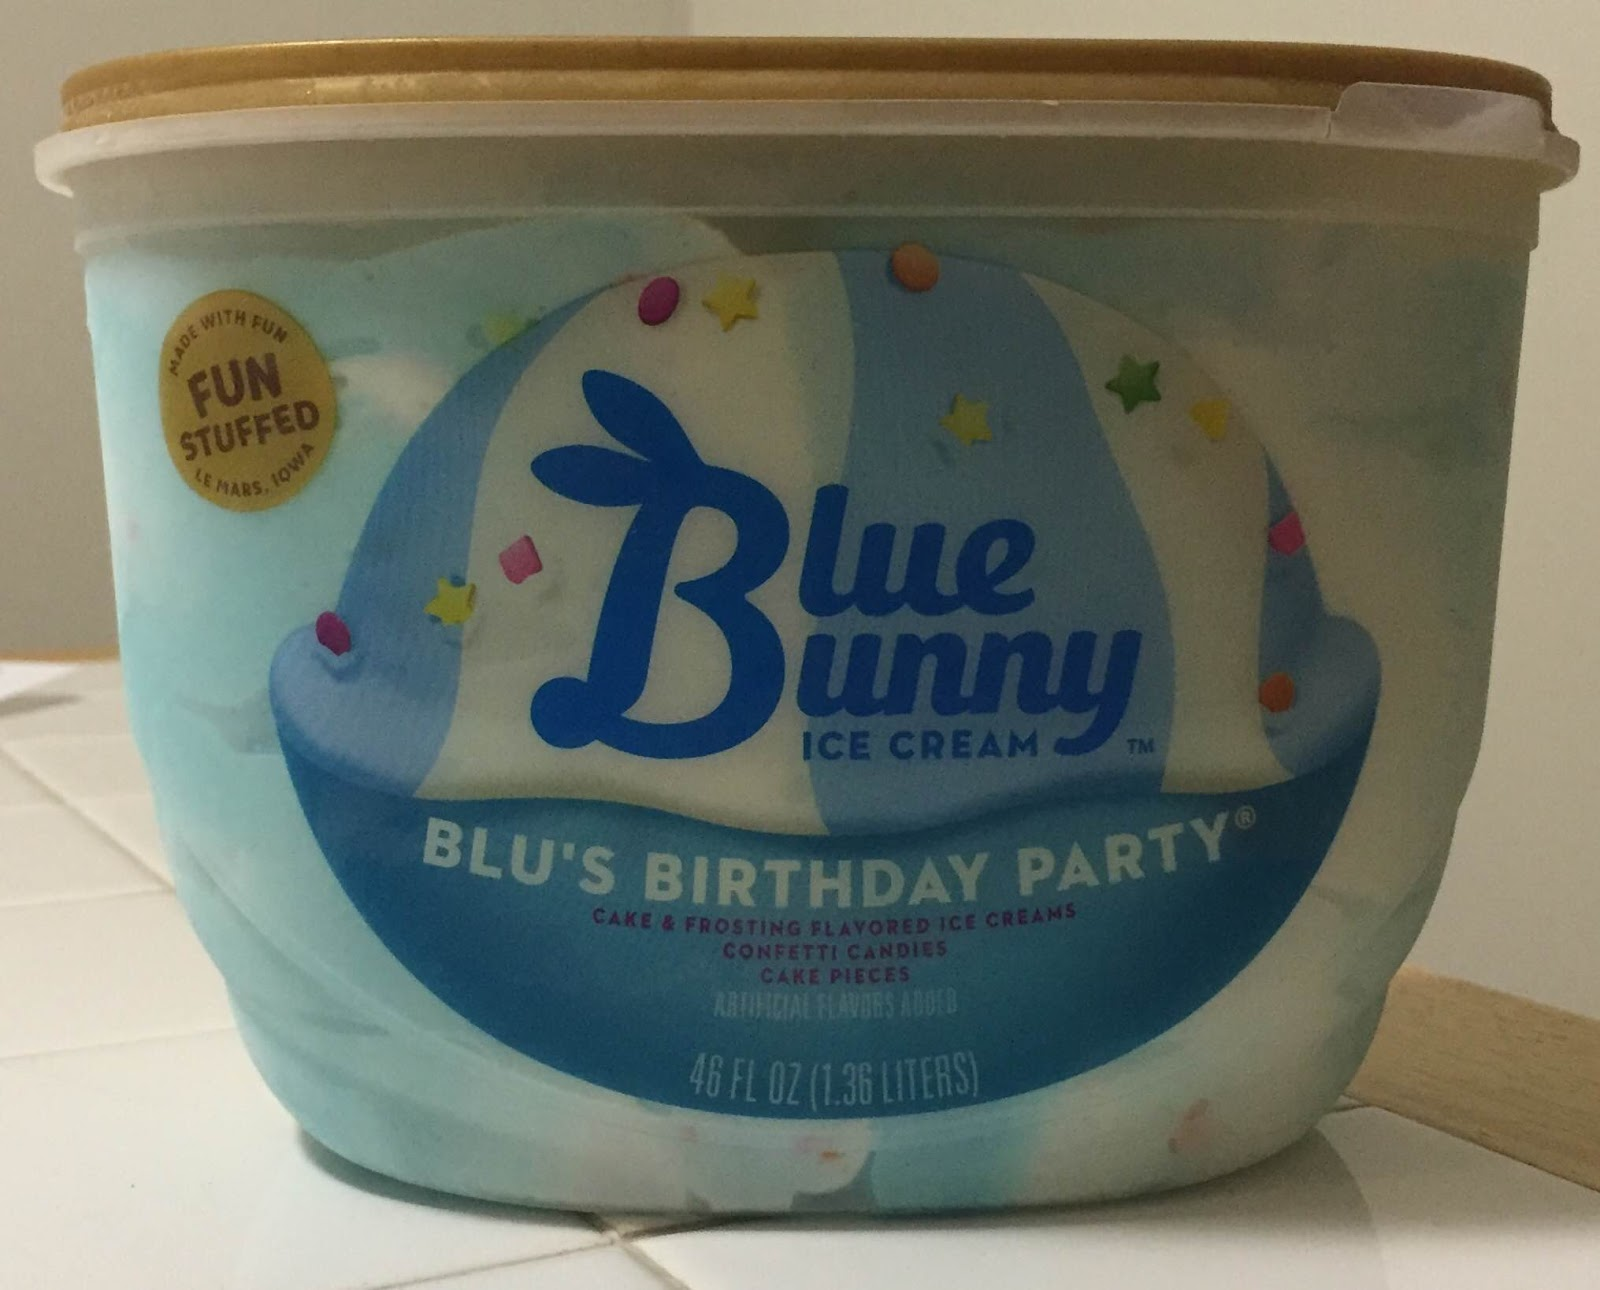 Blue Bunny Blus Birthday Party